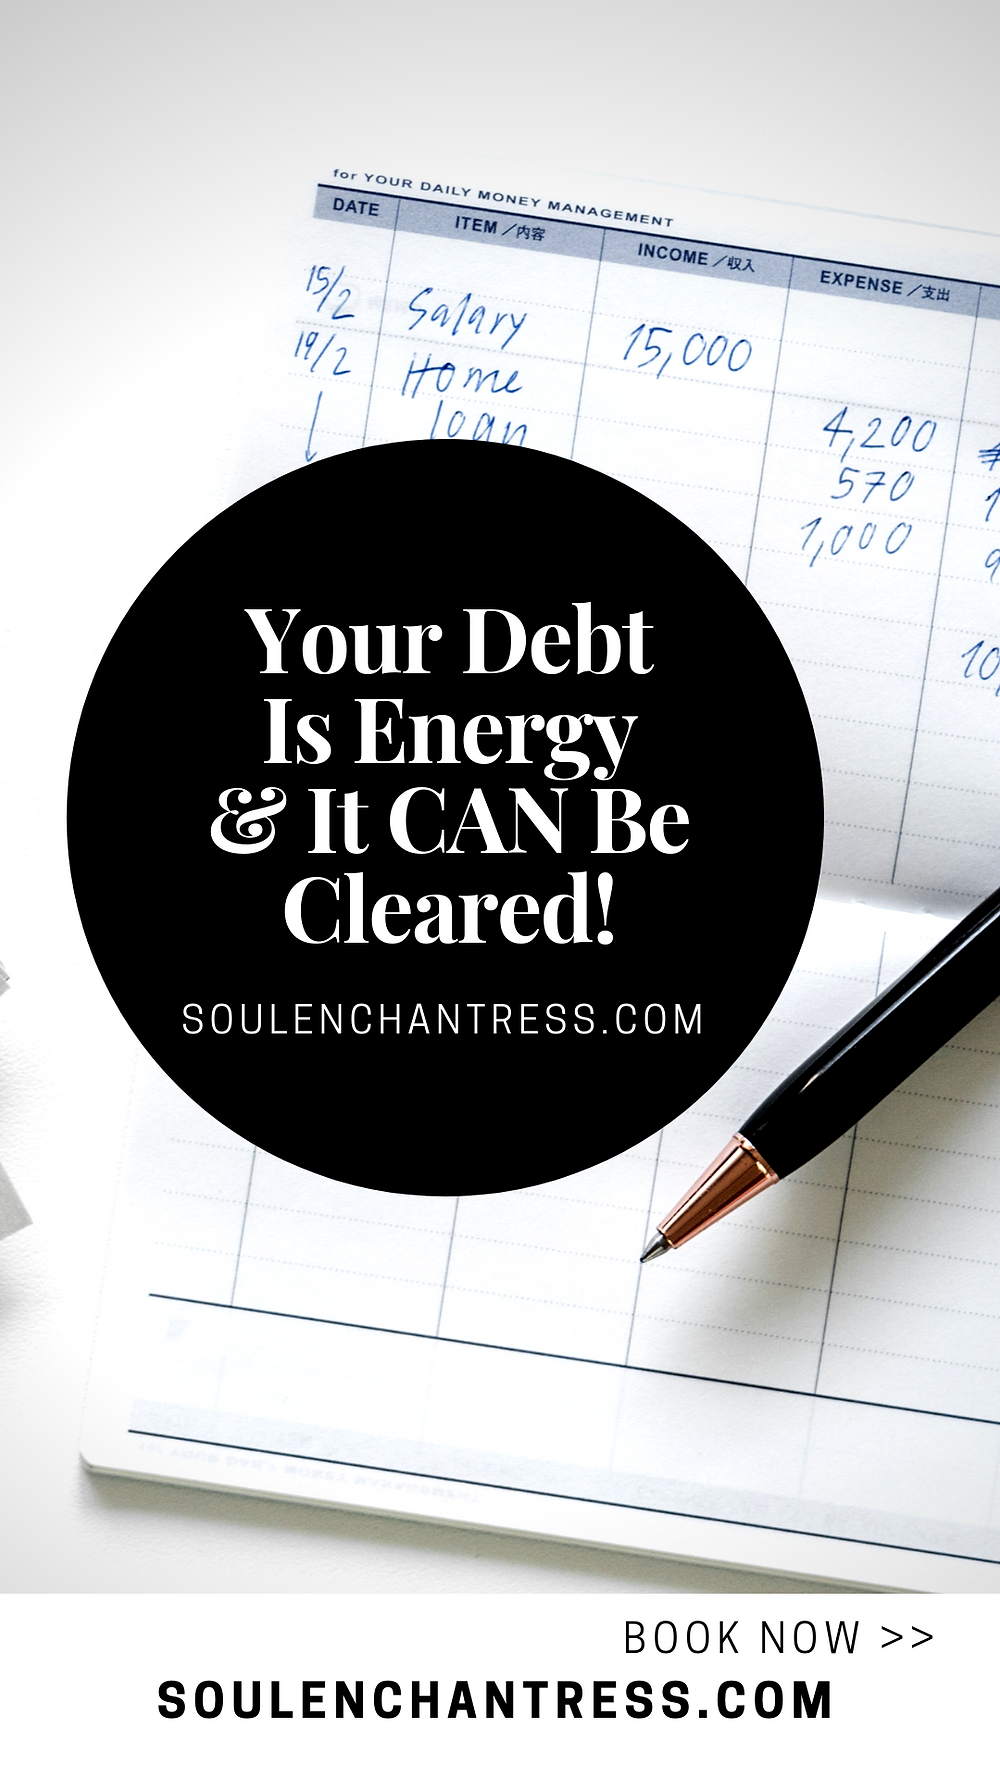 how to clear debt, how to attract money easily, paying off credit card debt, paying off debt in 6 months, soul enchantress